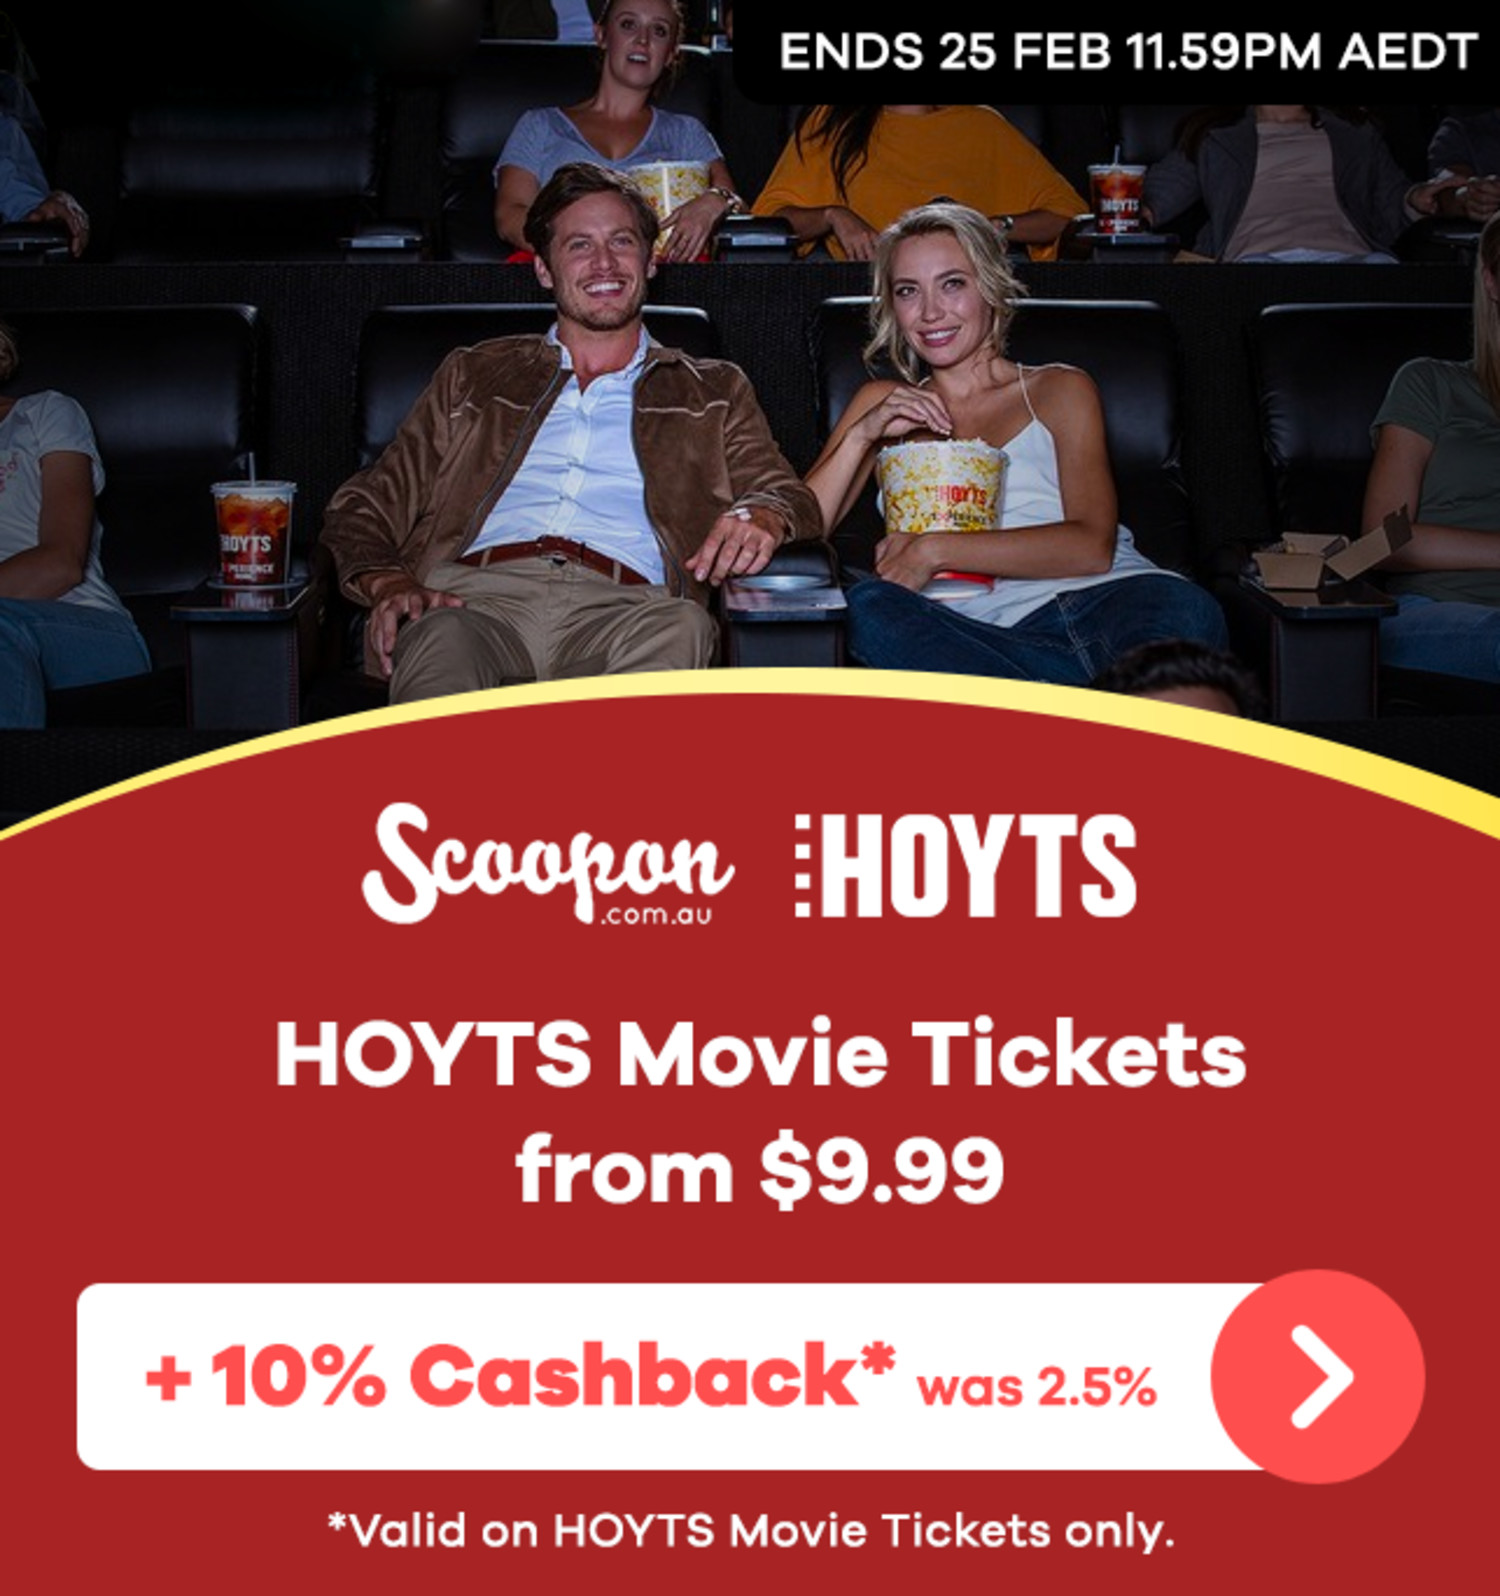 Scoopon - Hoyts Movie Tickets